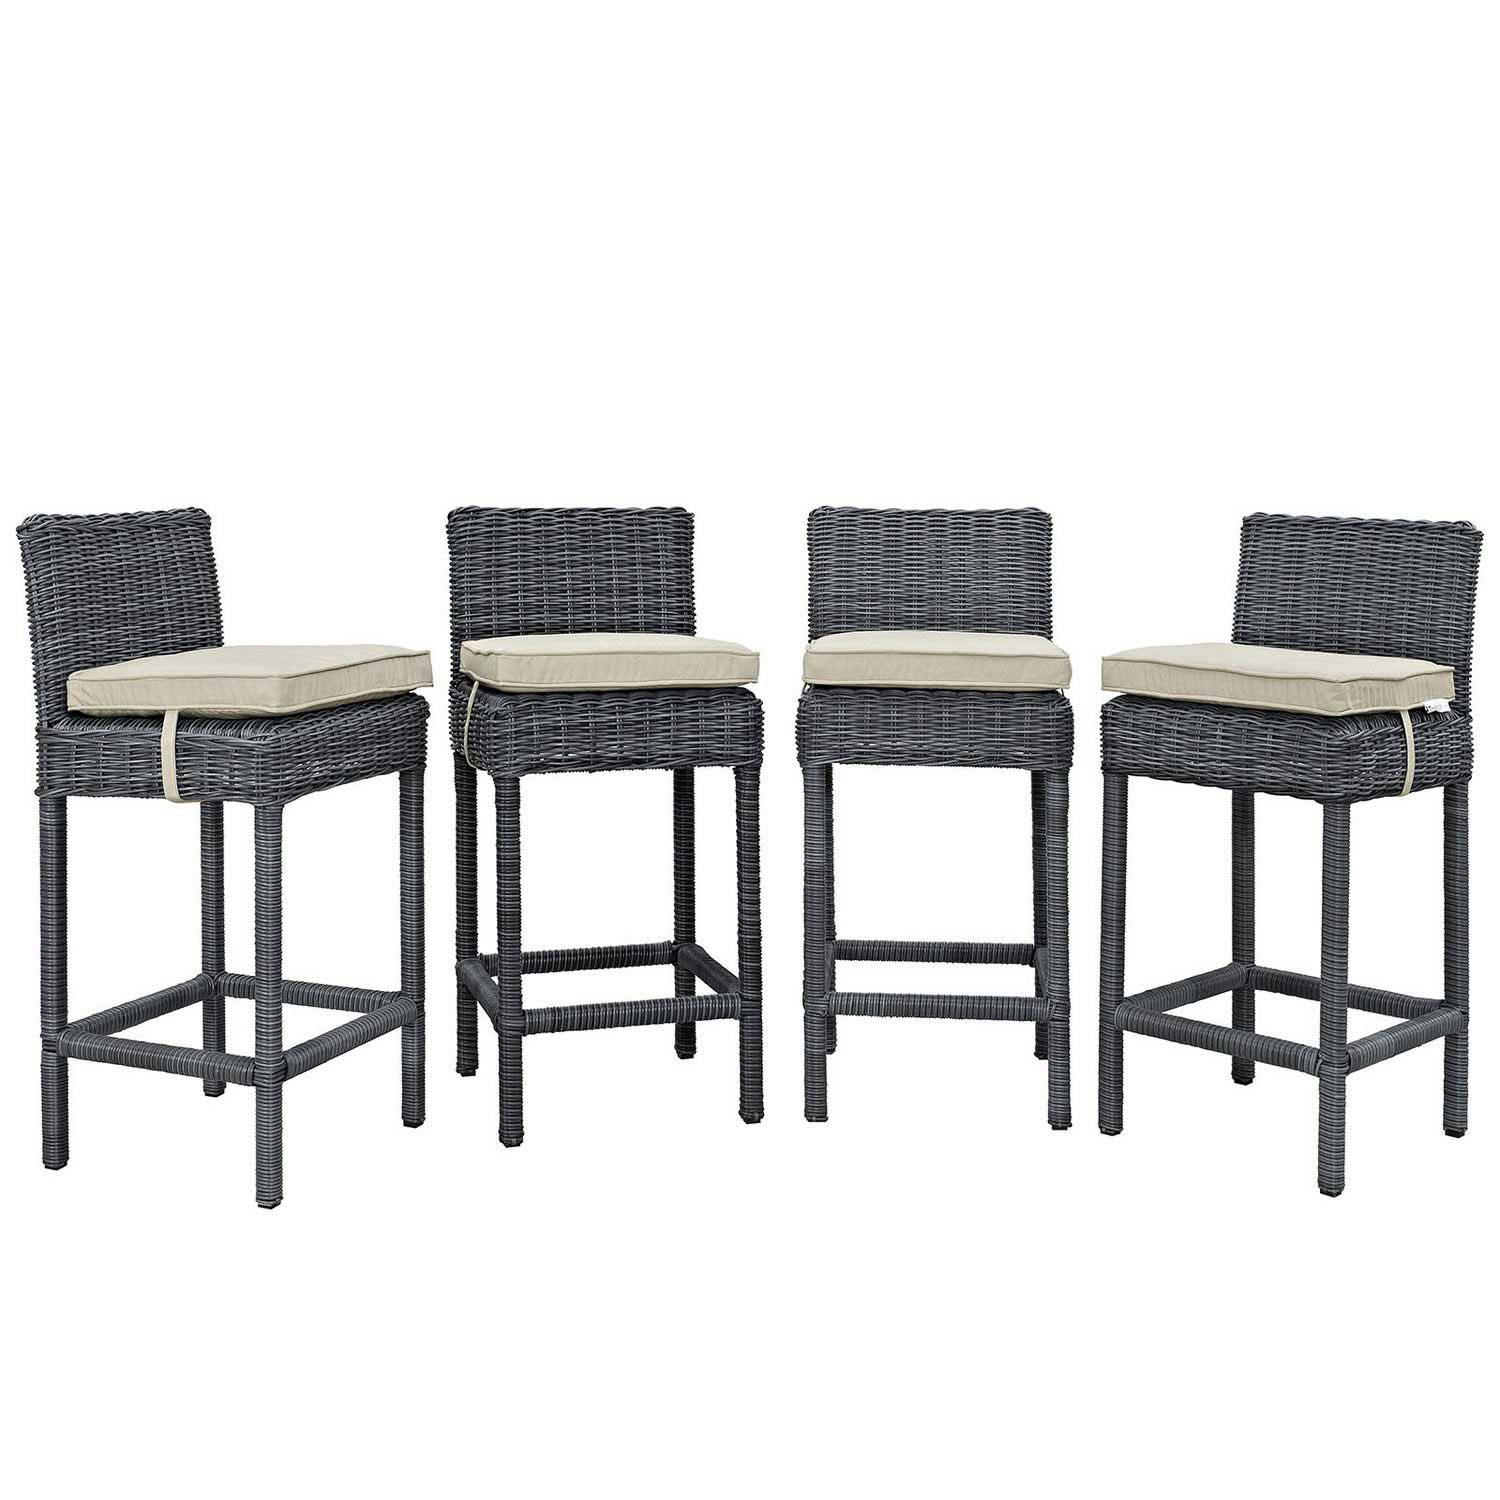 Modway Summon Bar Stool Outdoor Patio Sunbrella Set of 4 - Antique Canvas Beige